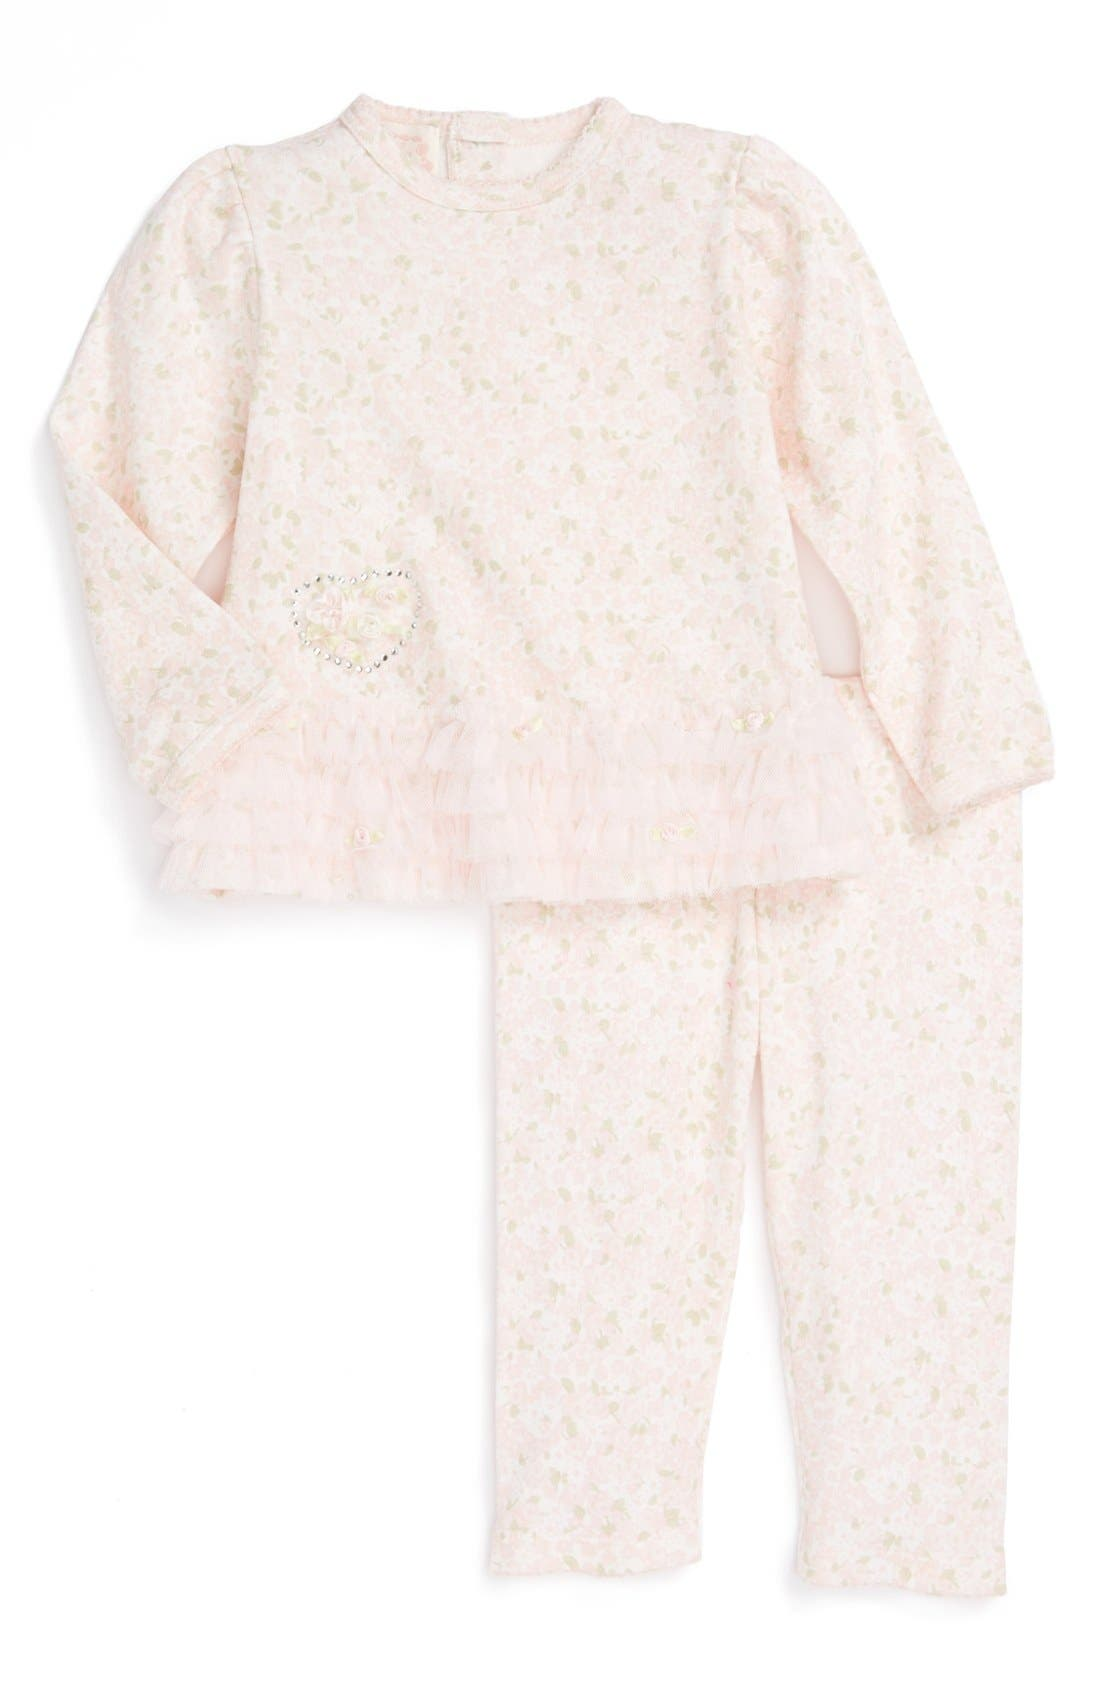 Main Image - Biscotti Top & Pants (Baby Girls)